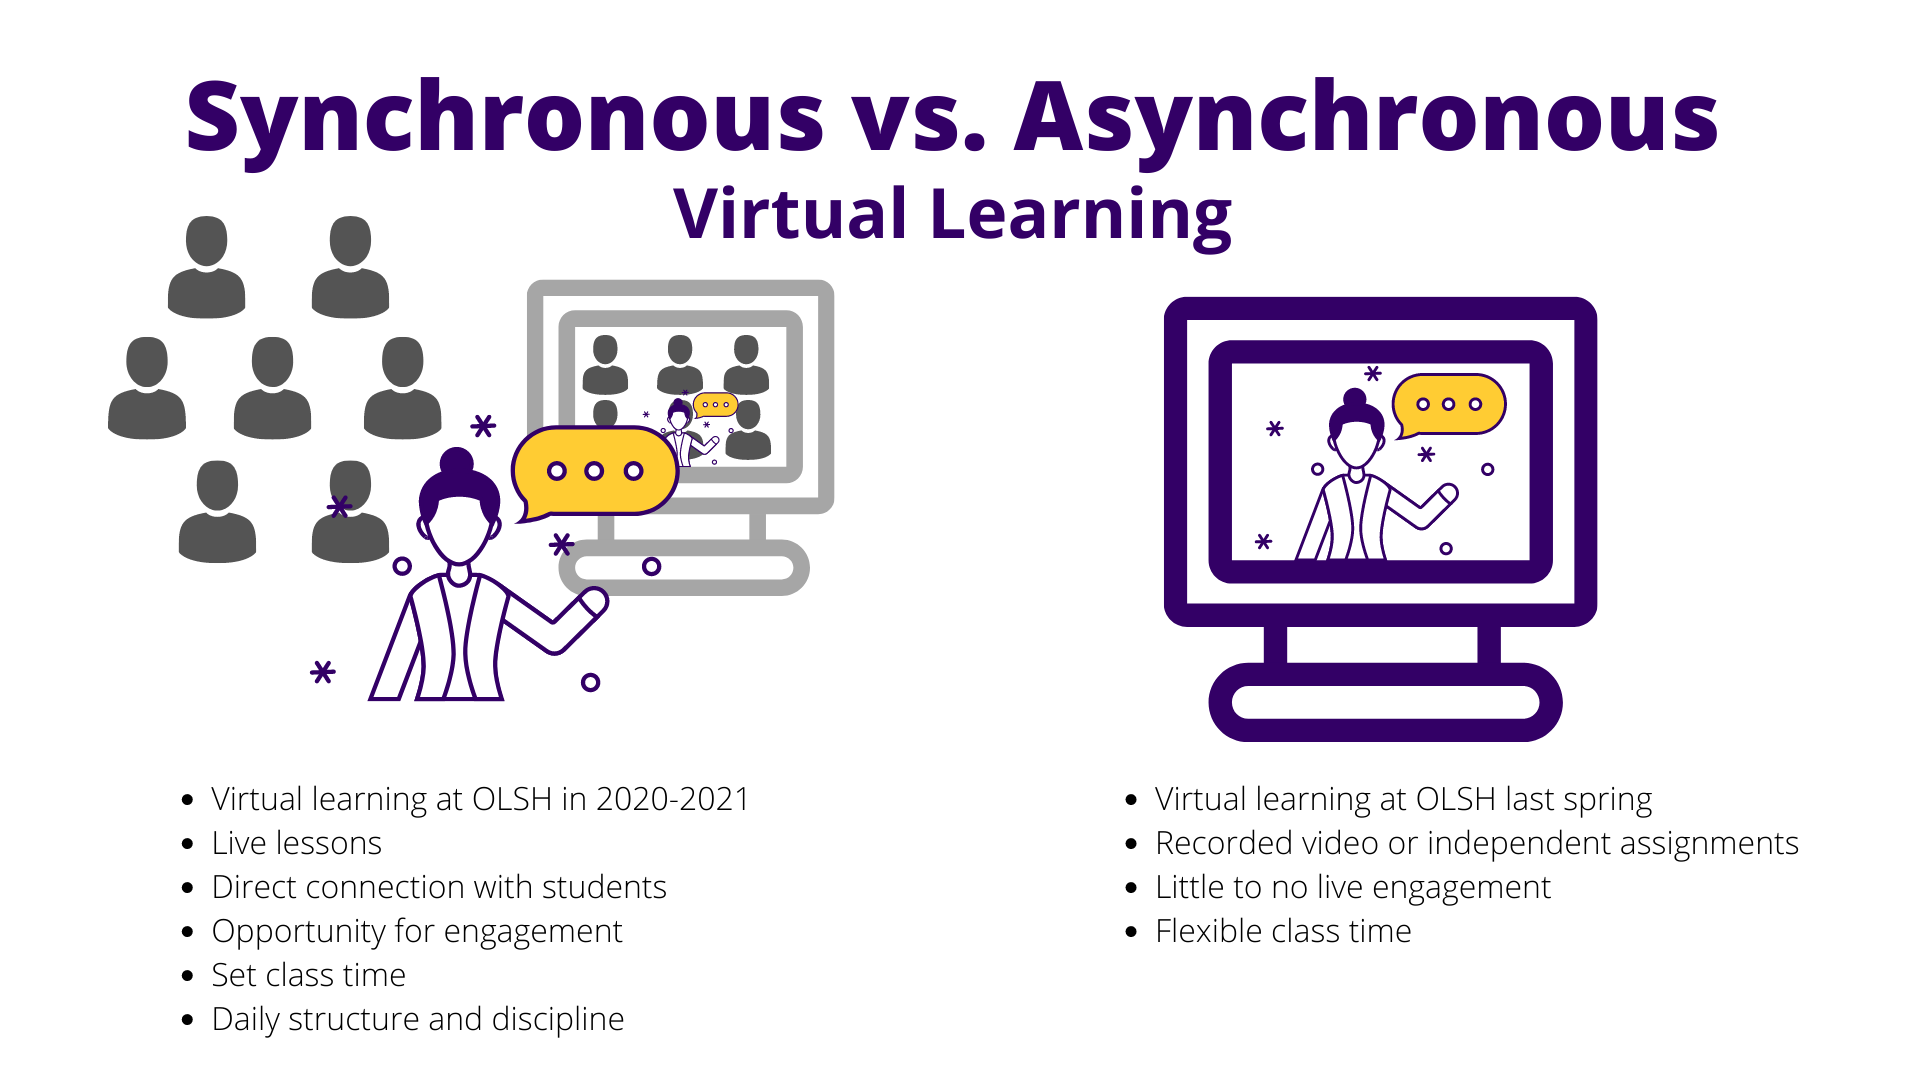 graphic explaining the difference between synchronous and asynchronous virtual learning